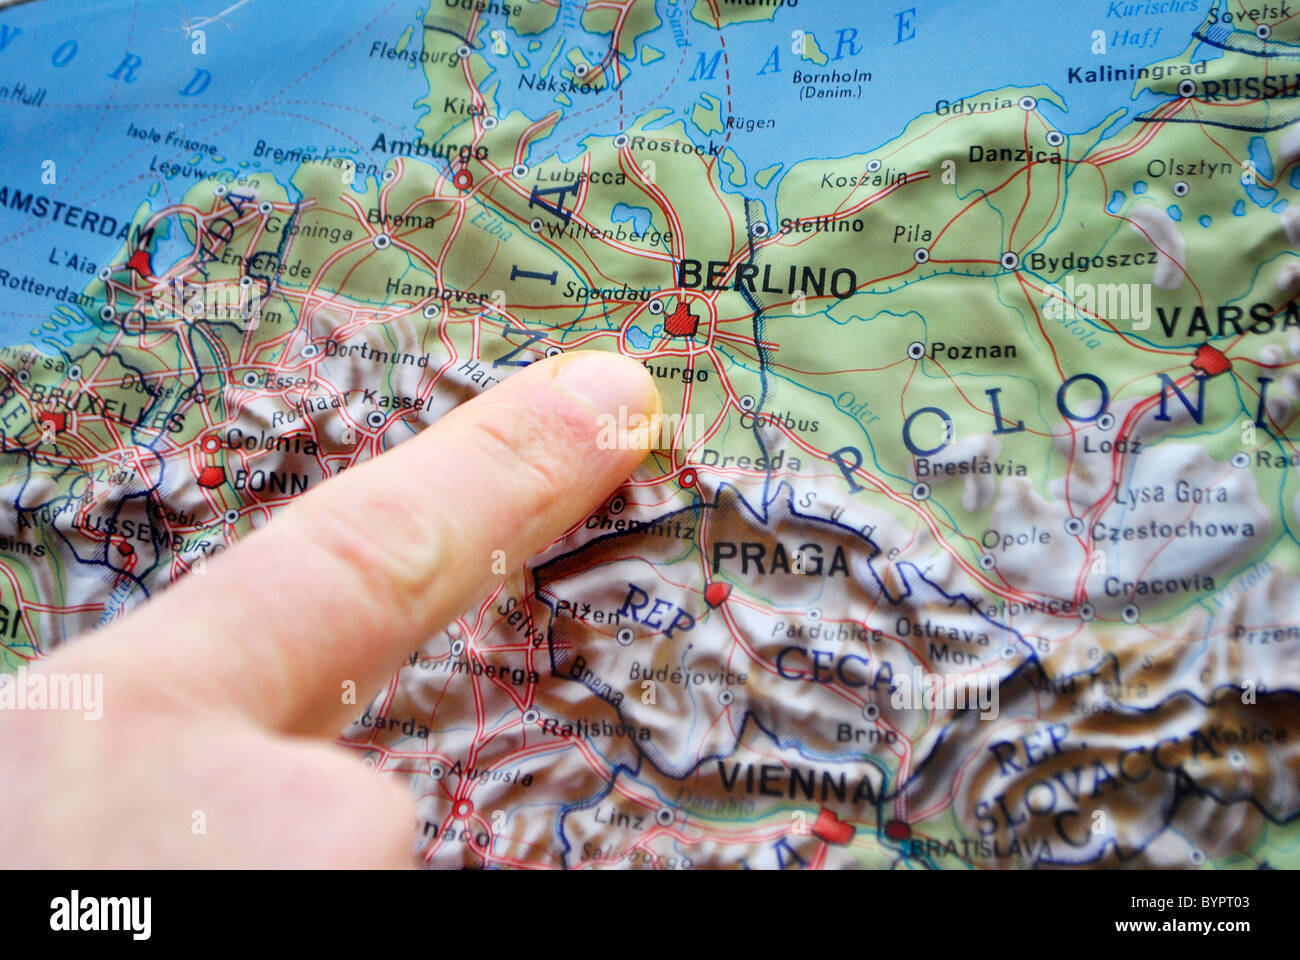 Map Of Germany France.Map In Relief Europe France Germany Italy Stock Photo 34307843 Alamy